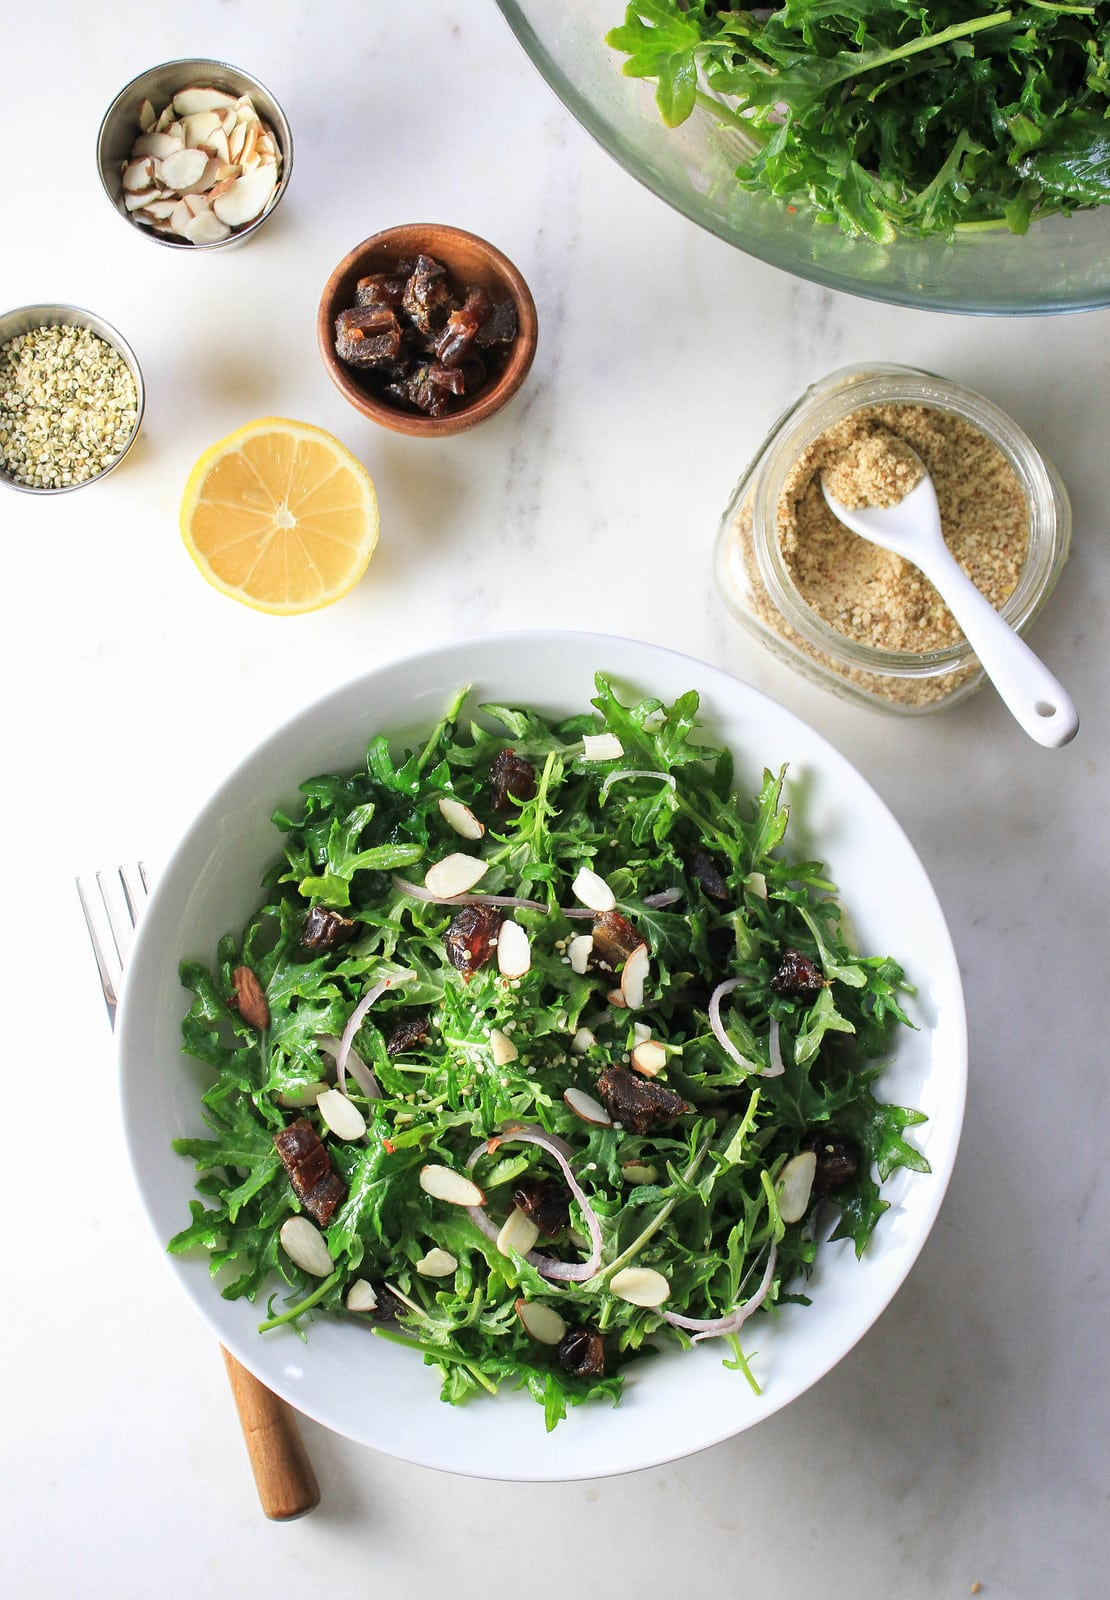 top down view of kale salad with dates, almonds and lemon dressing in a white serving bowl.